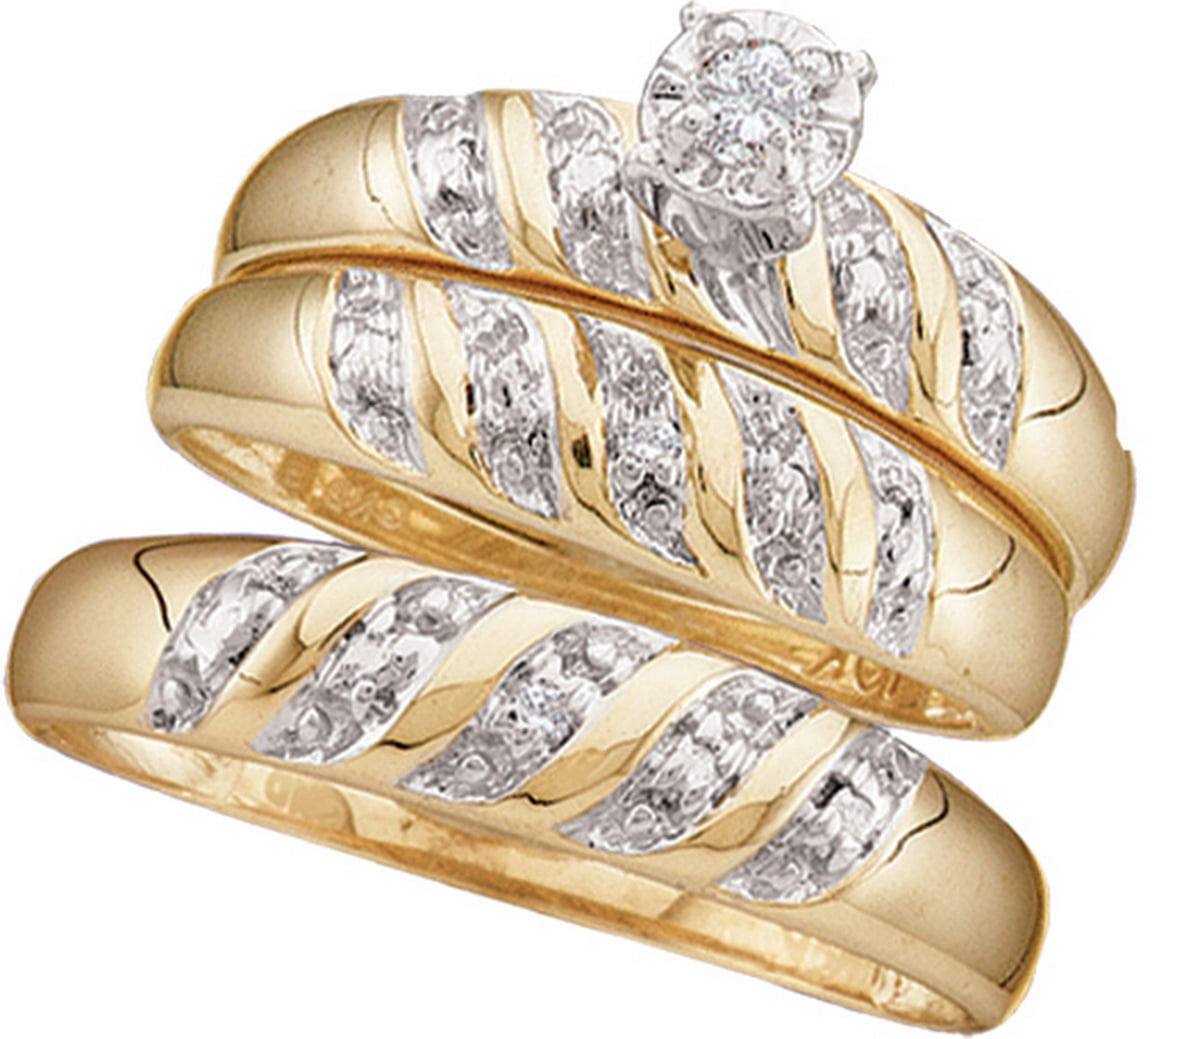 10k Yellow Gold Round Diamond Trio Matching 2-tone His Hers Men Women Wedding Ring Set (.07 cttw.) size- 8.5 by